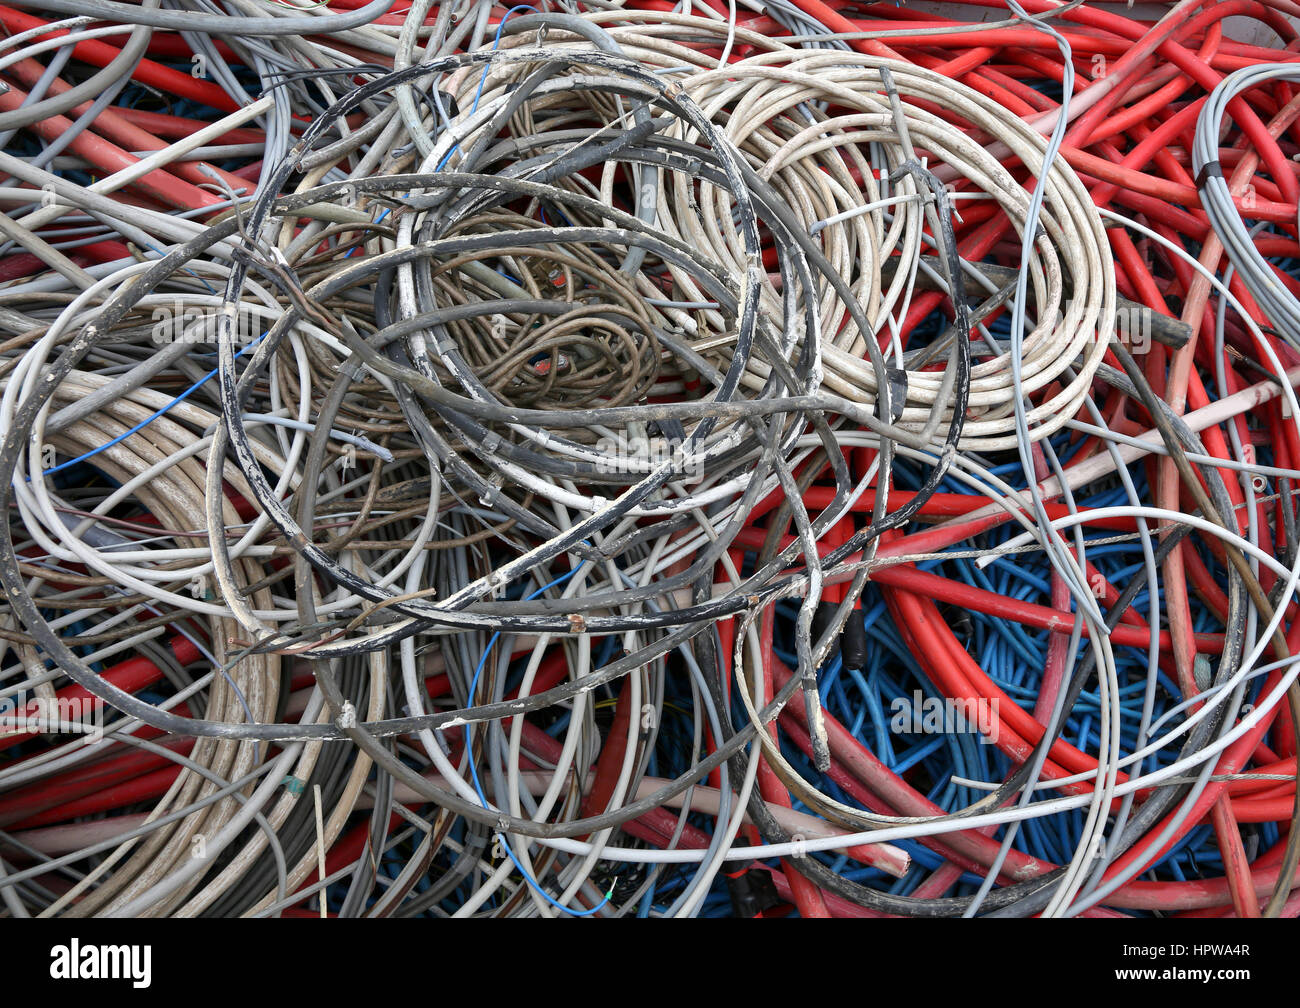 Recycling Electricity Cables Stock Photos & Recycling Electricity ...